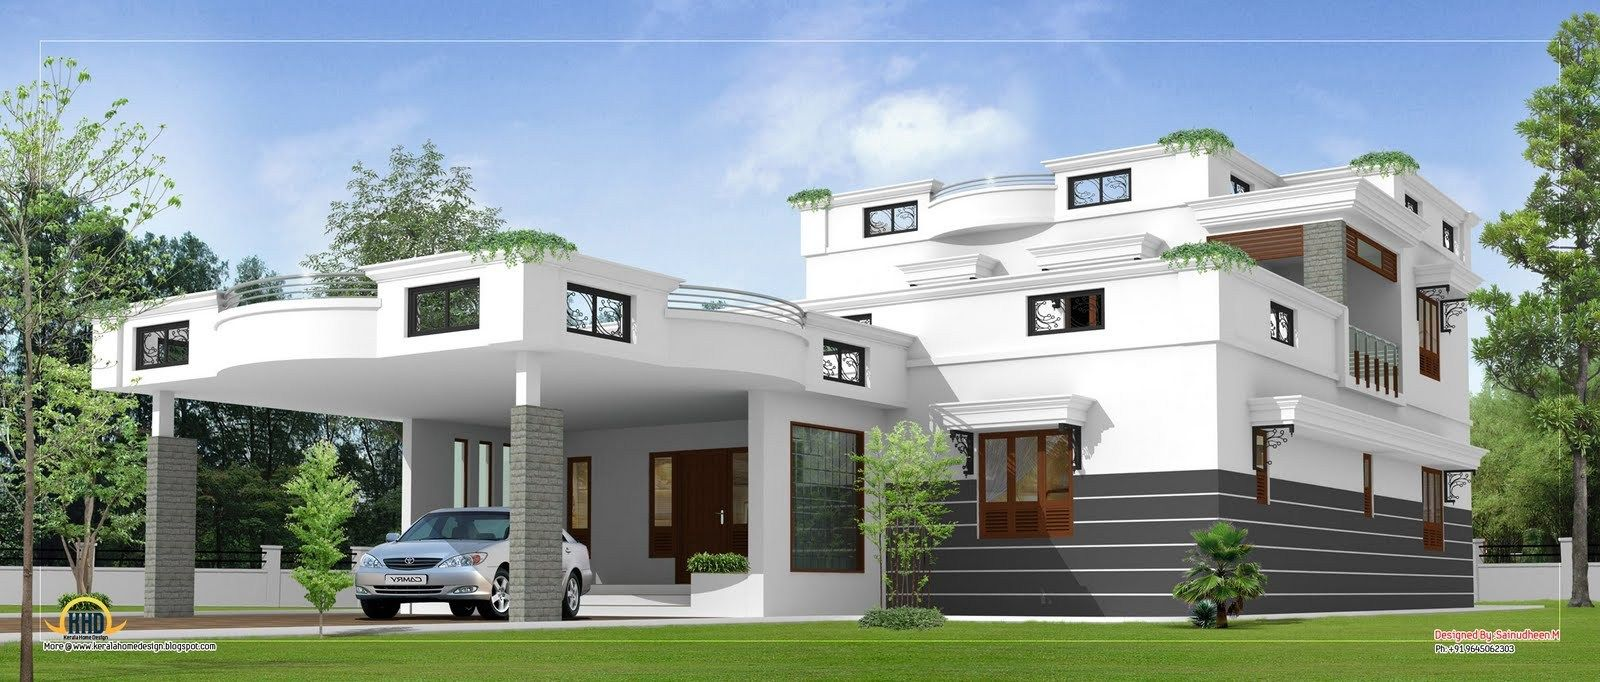 contemporary home designs home design ideas simply elegant home ...